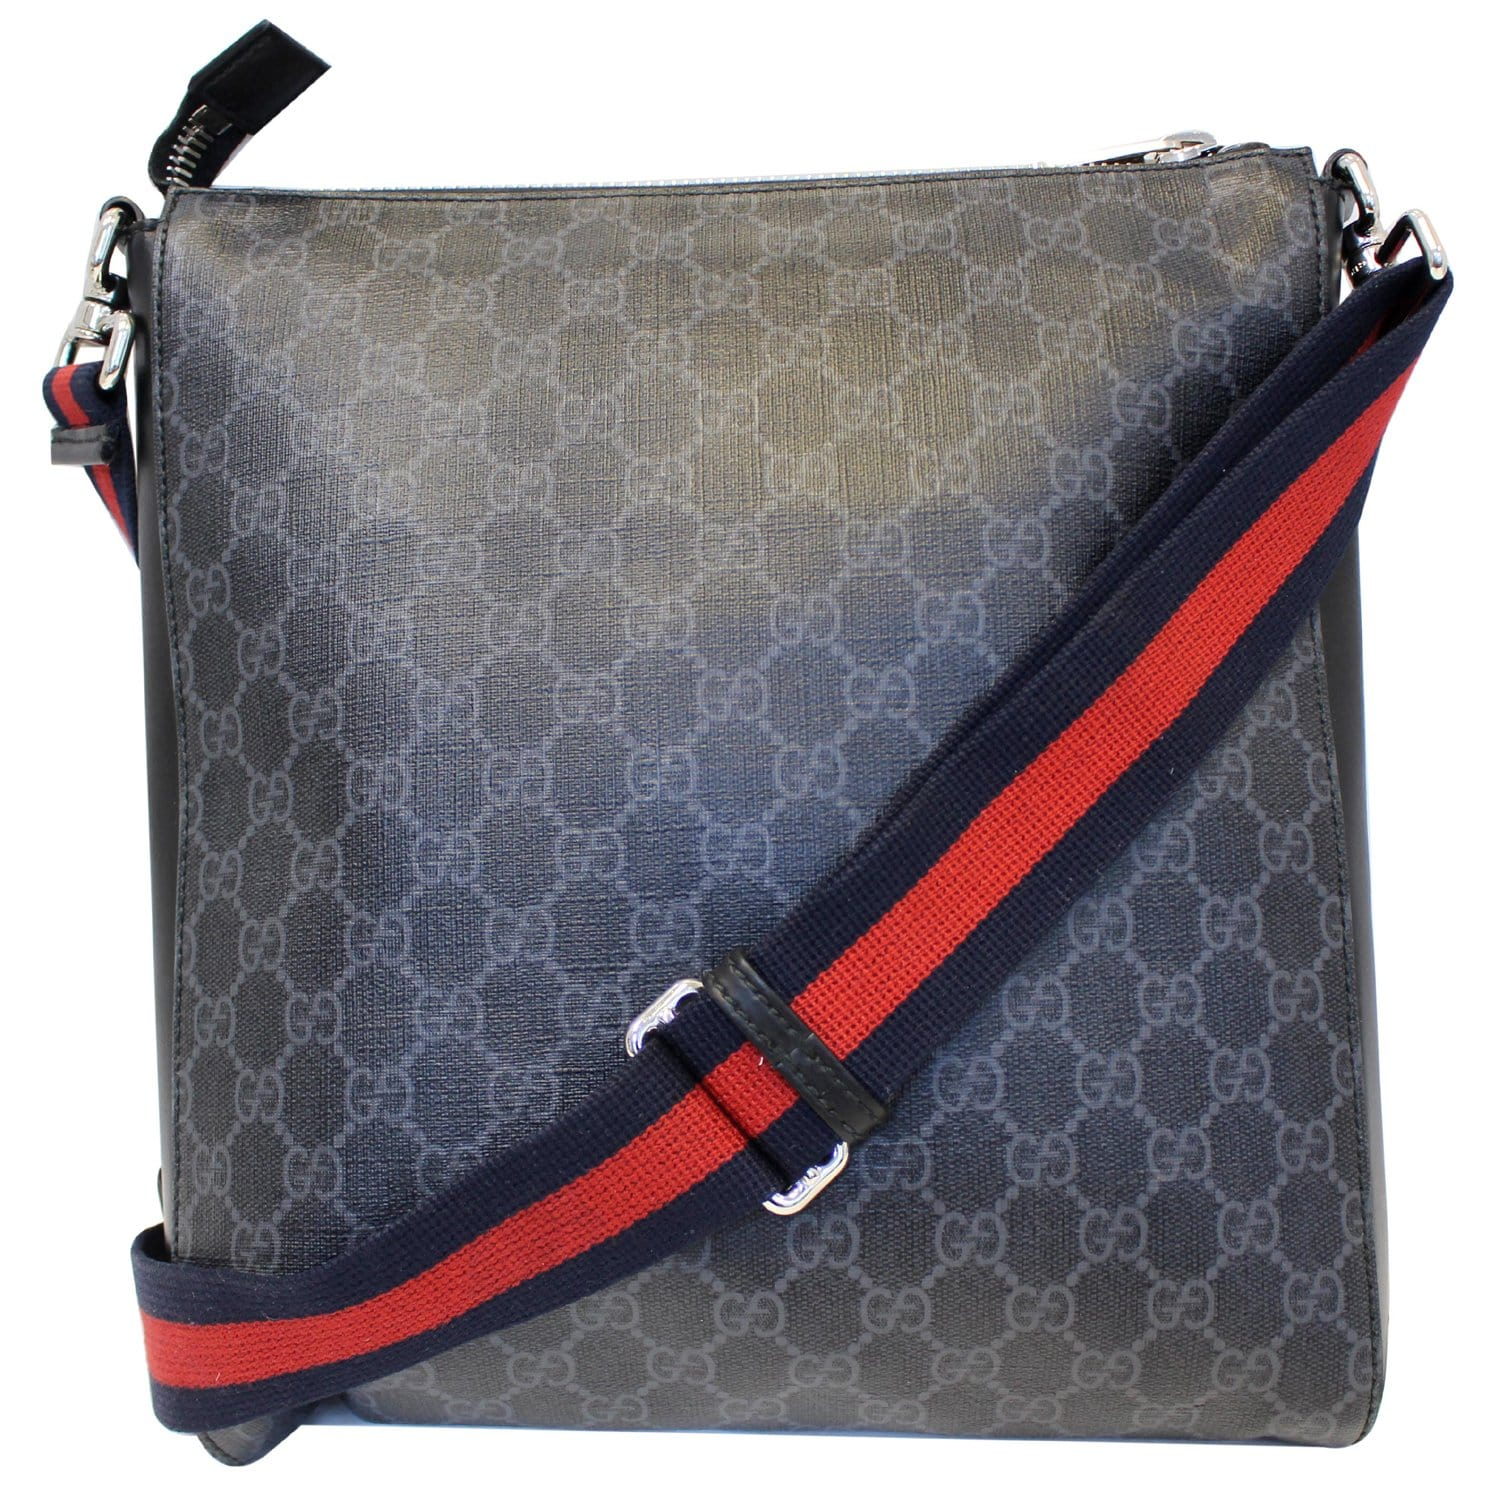 e20ac2b7471e GUCCI Night Courrier GG Supreme Messenger Crossbody Bag Black/Grey-US